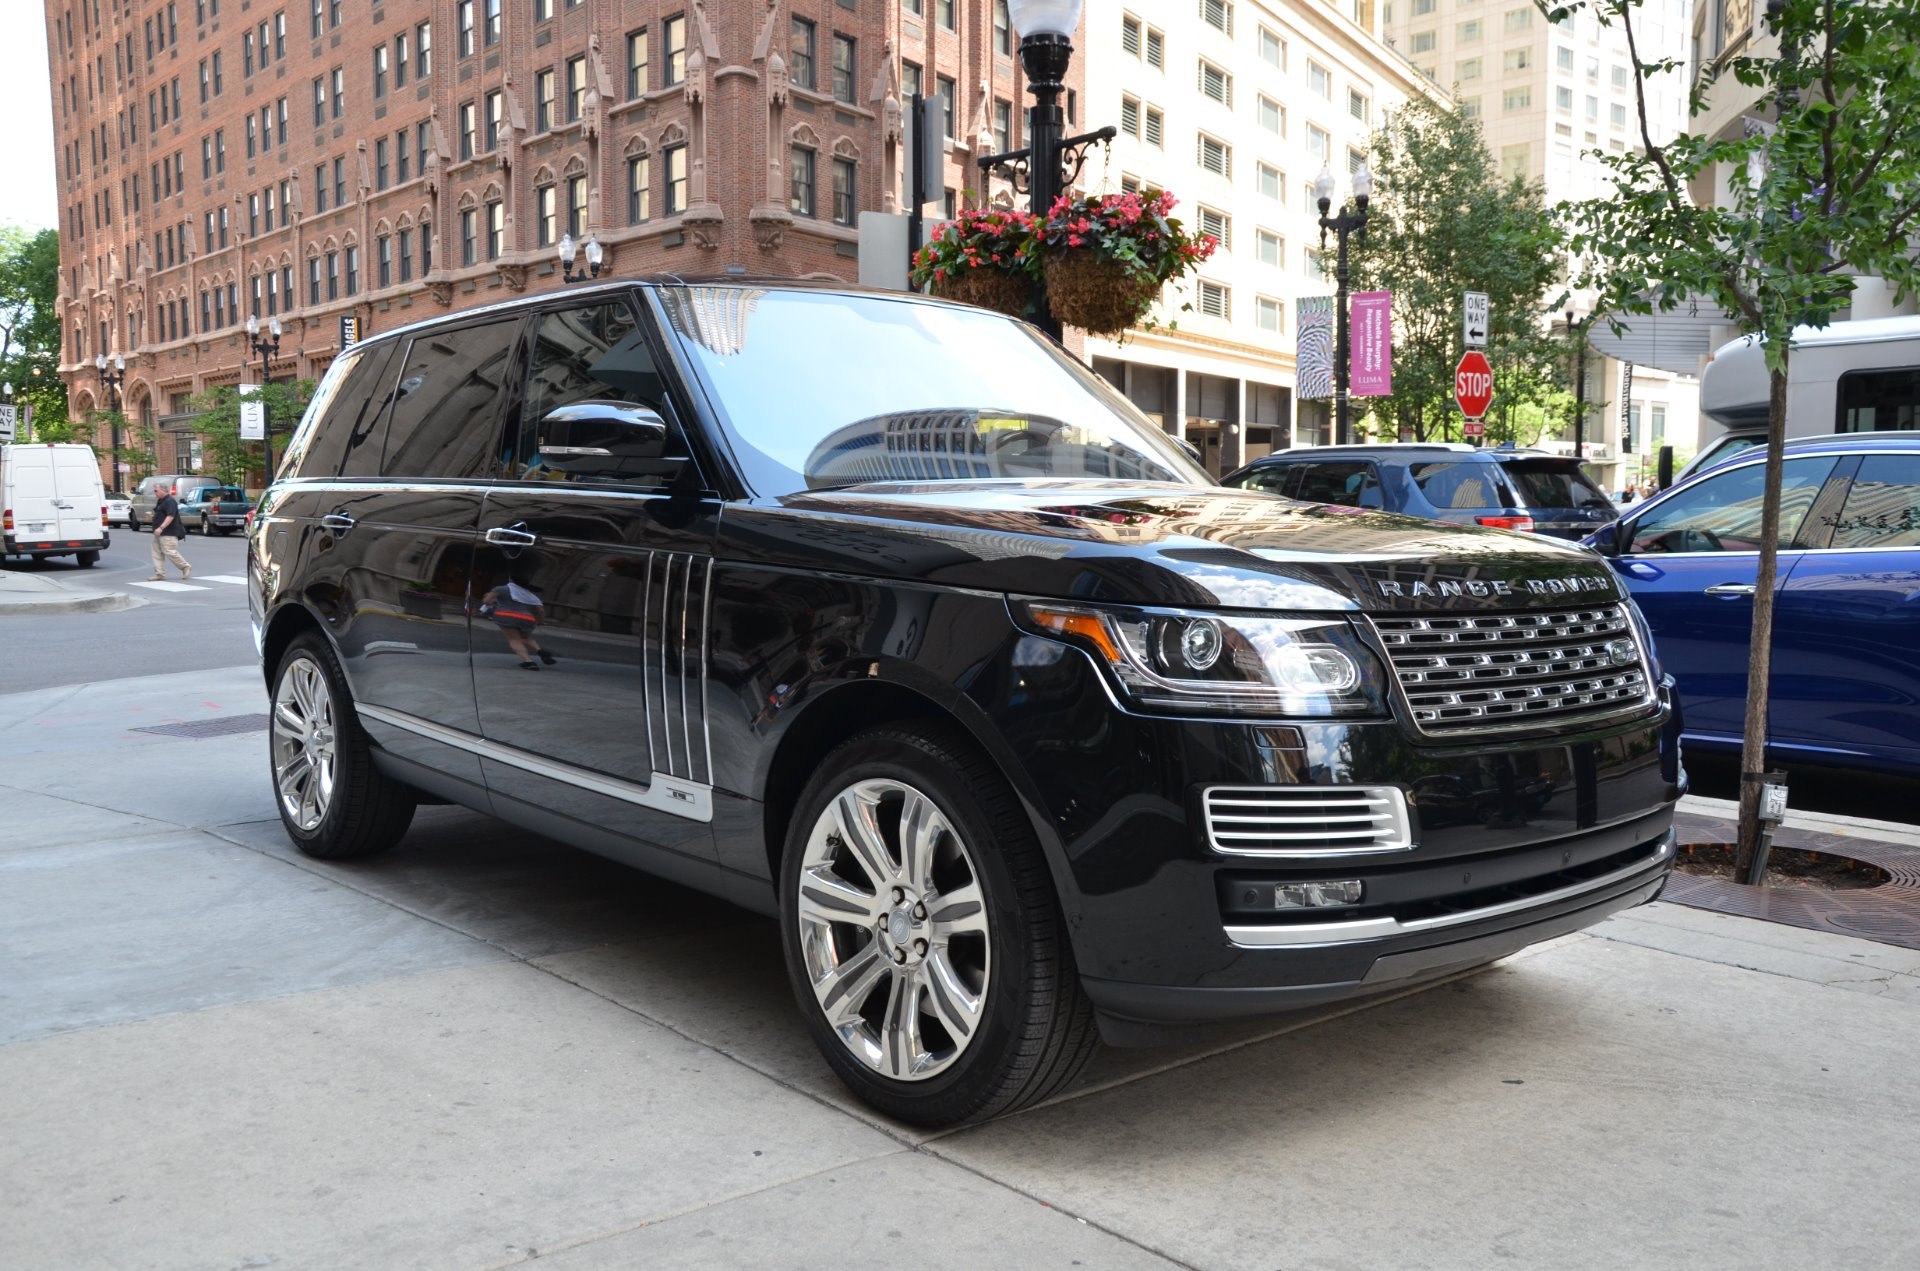 2016 land rover range rover svautobiography lwb stock 59731 for sale near chicago il il. Black Bedroom Furniture Sets. Home Design Ideas